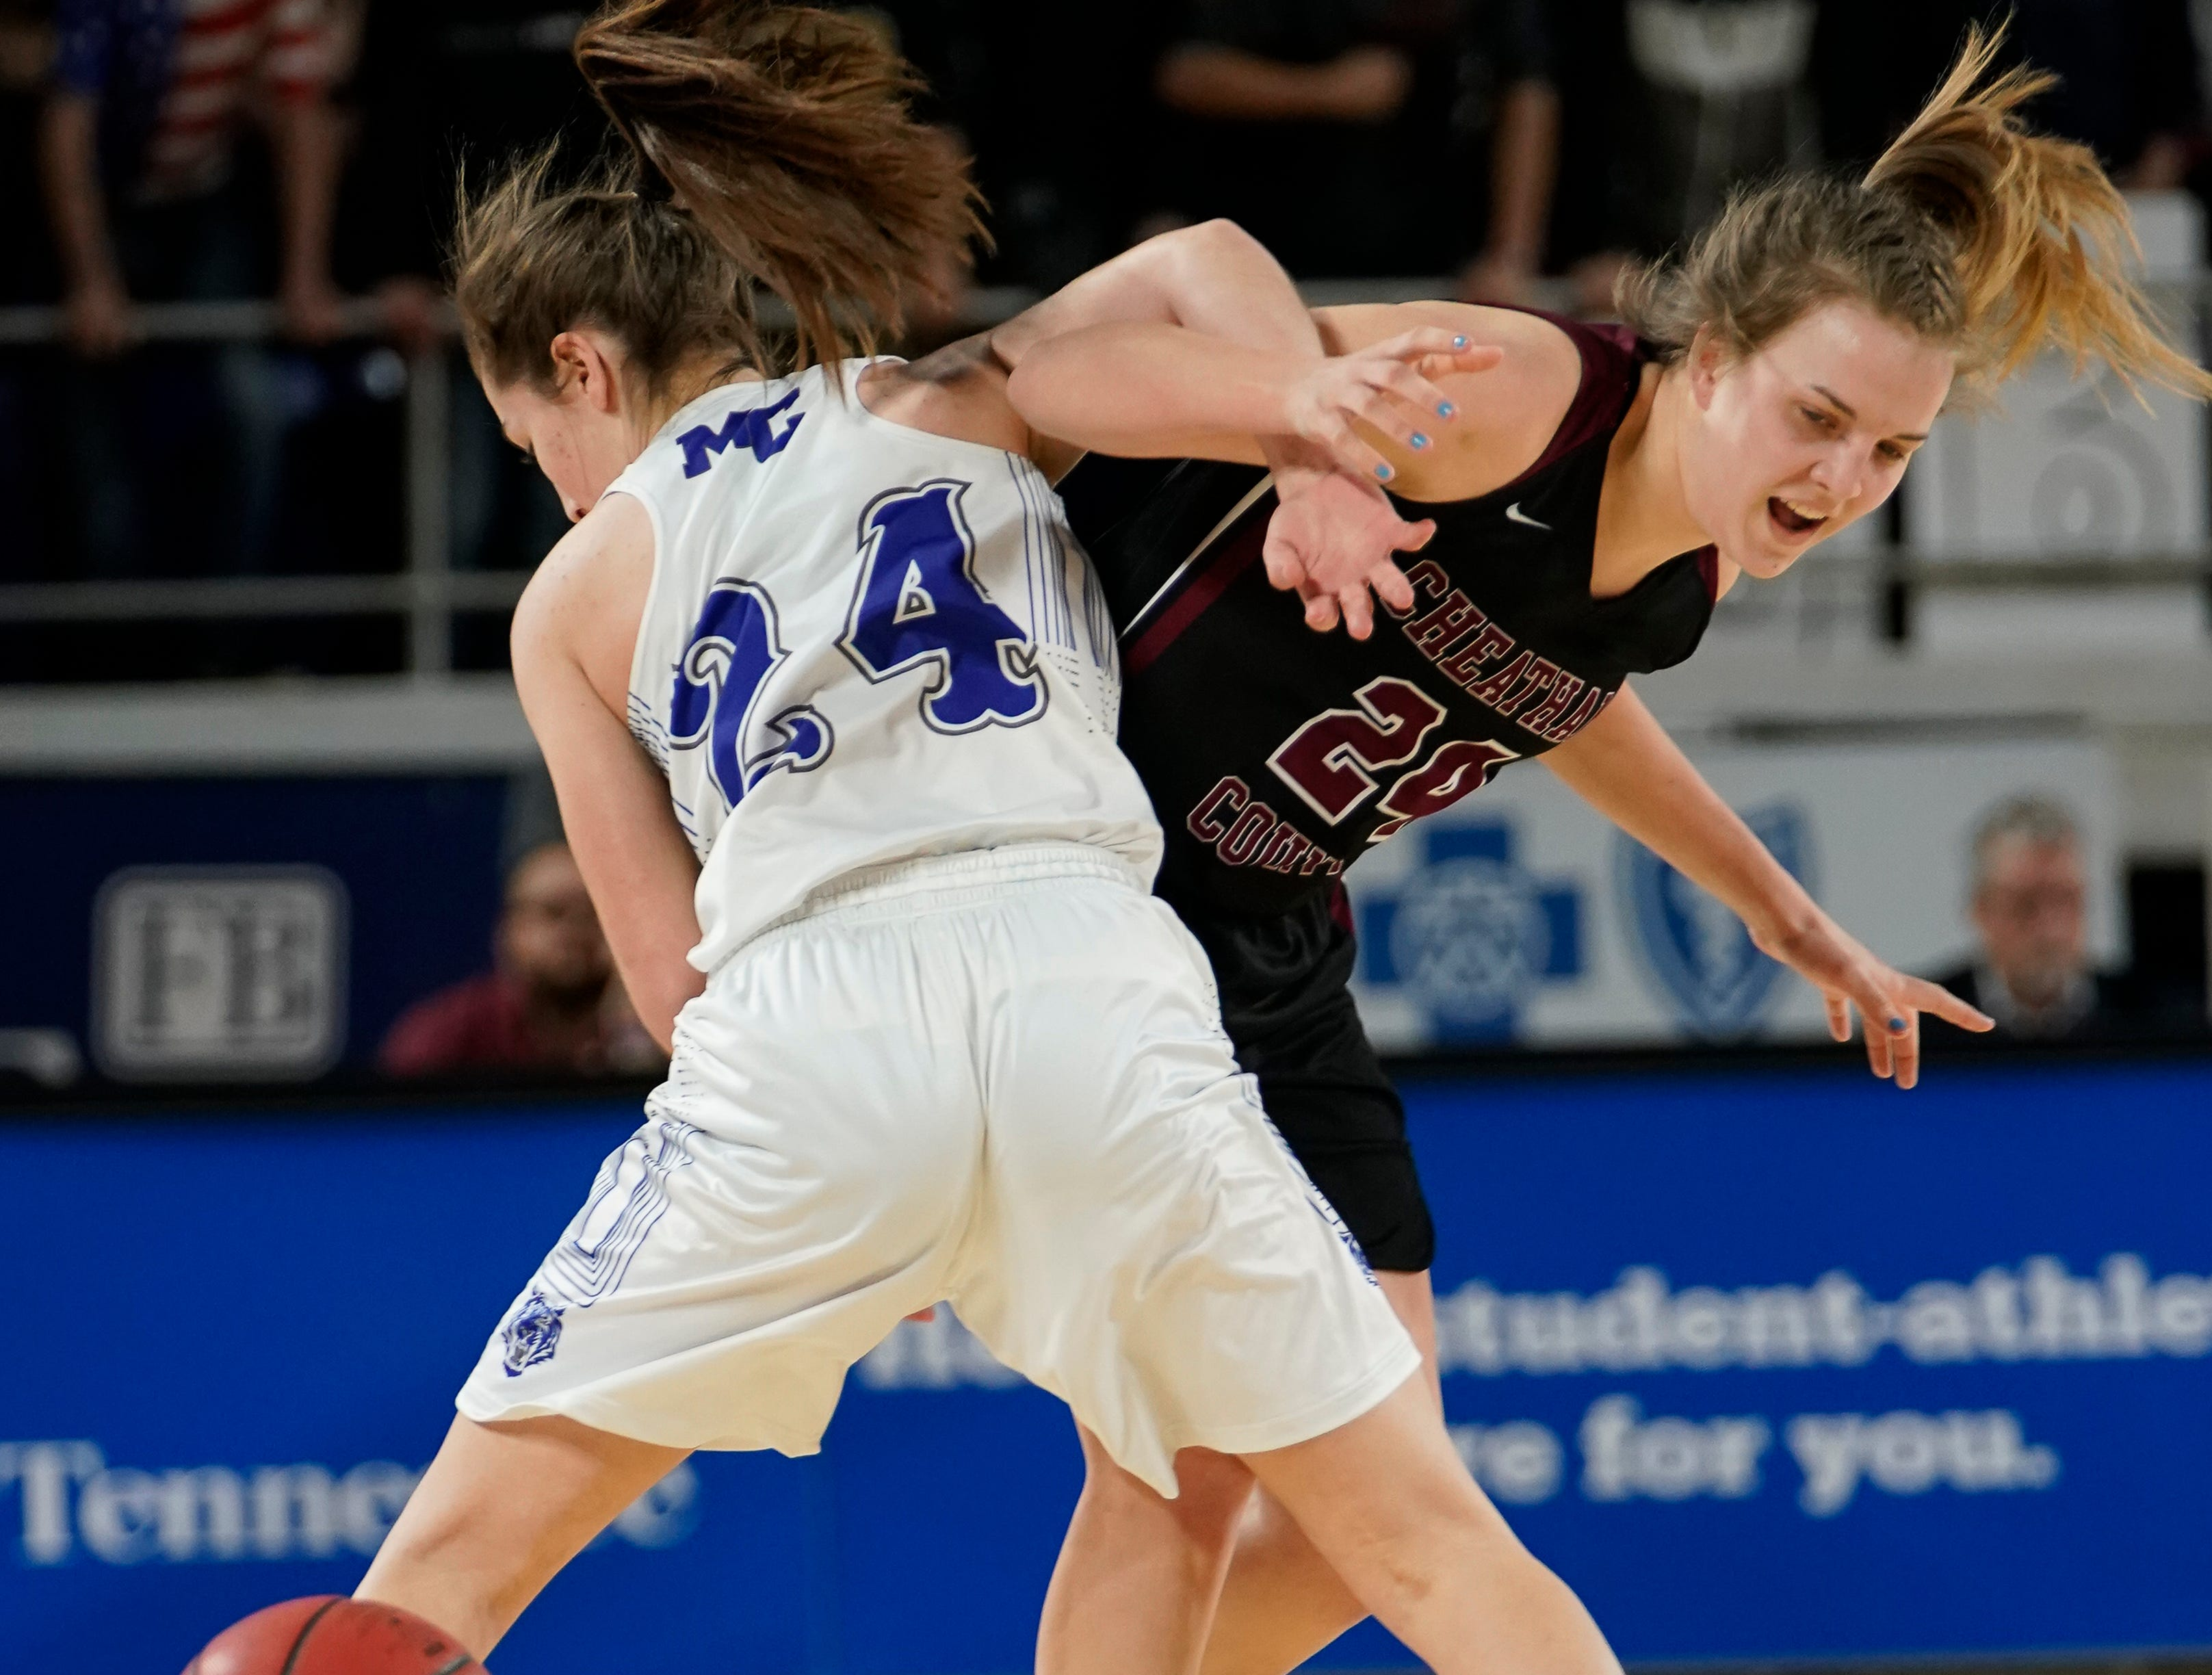 Macon Co. guard Keeley Carter (24) and Cheatham Co. center Alli Douglas (24) battle for loose ball during the first half of their semifinal game in the Division I Class AA Girls TSSAA Girls State Championships at Murphy Center Friday, March 8, 2019 in Murfreesboro, Tenn.